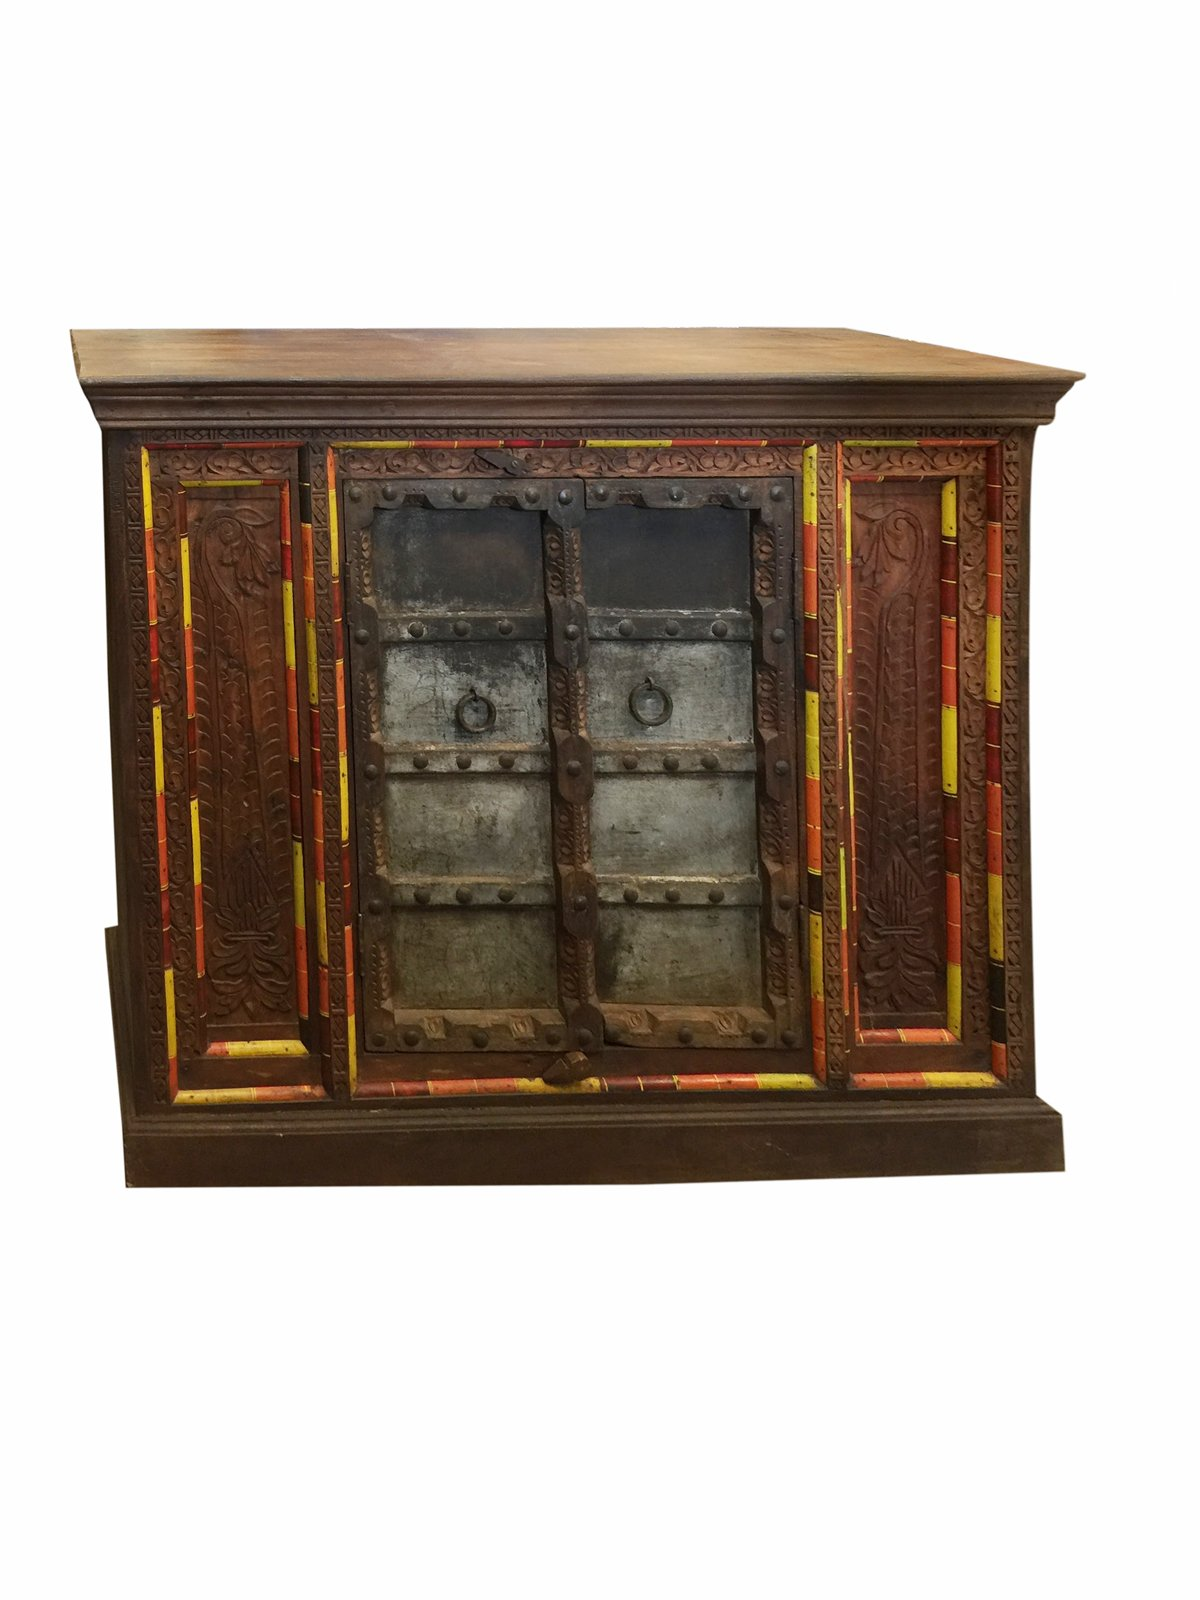 Antique Distressed Cabinet Jharoka Double Door Designs Sideboard Chest Rustic Boho Shabby Chic Decor